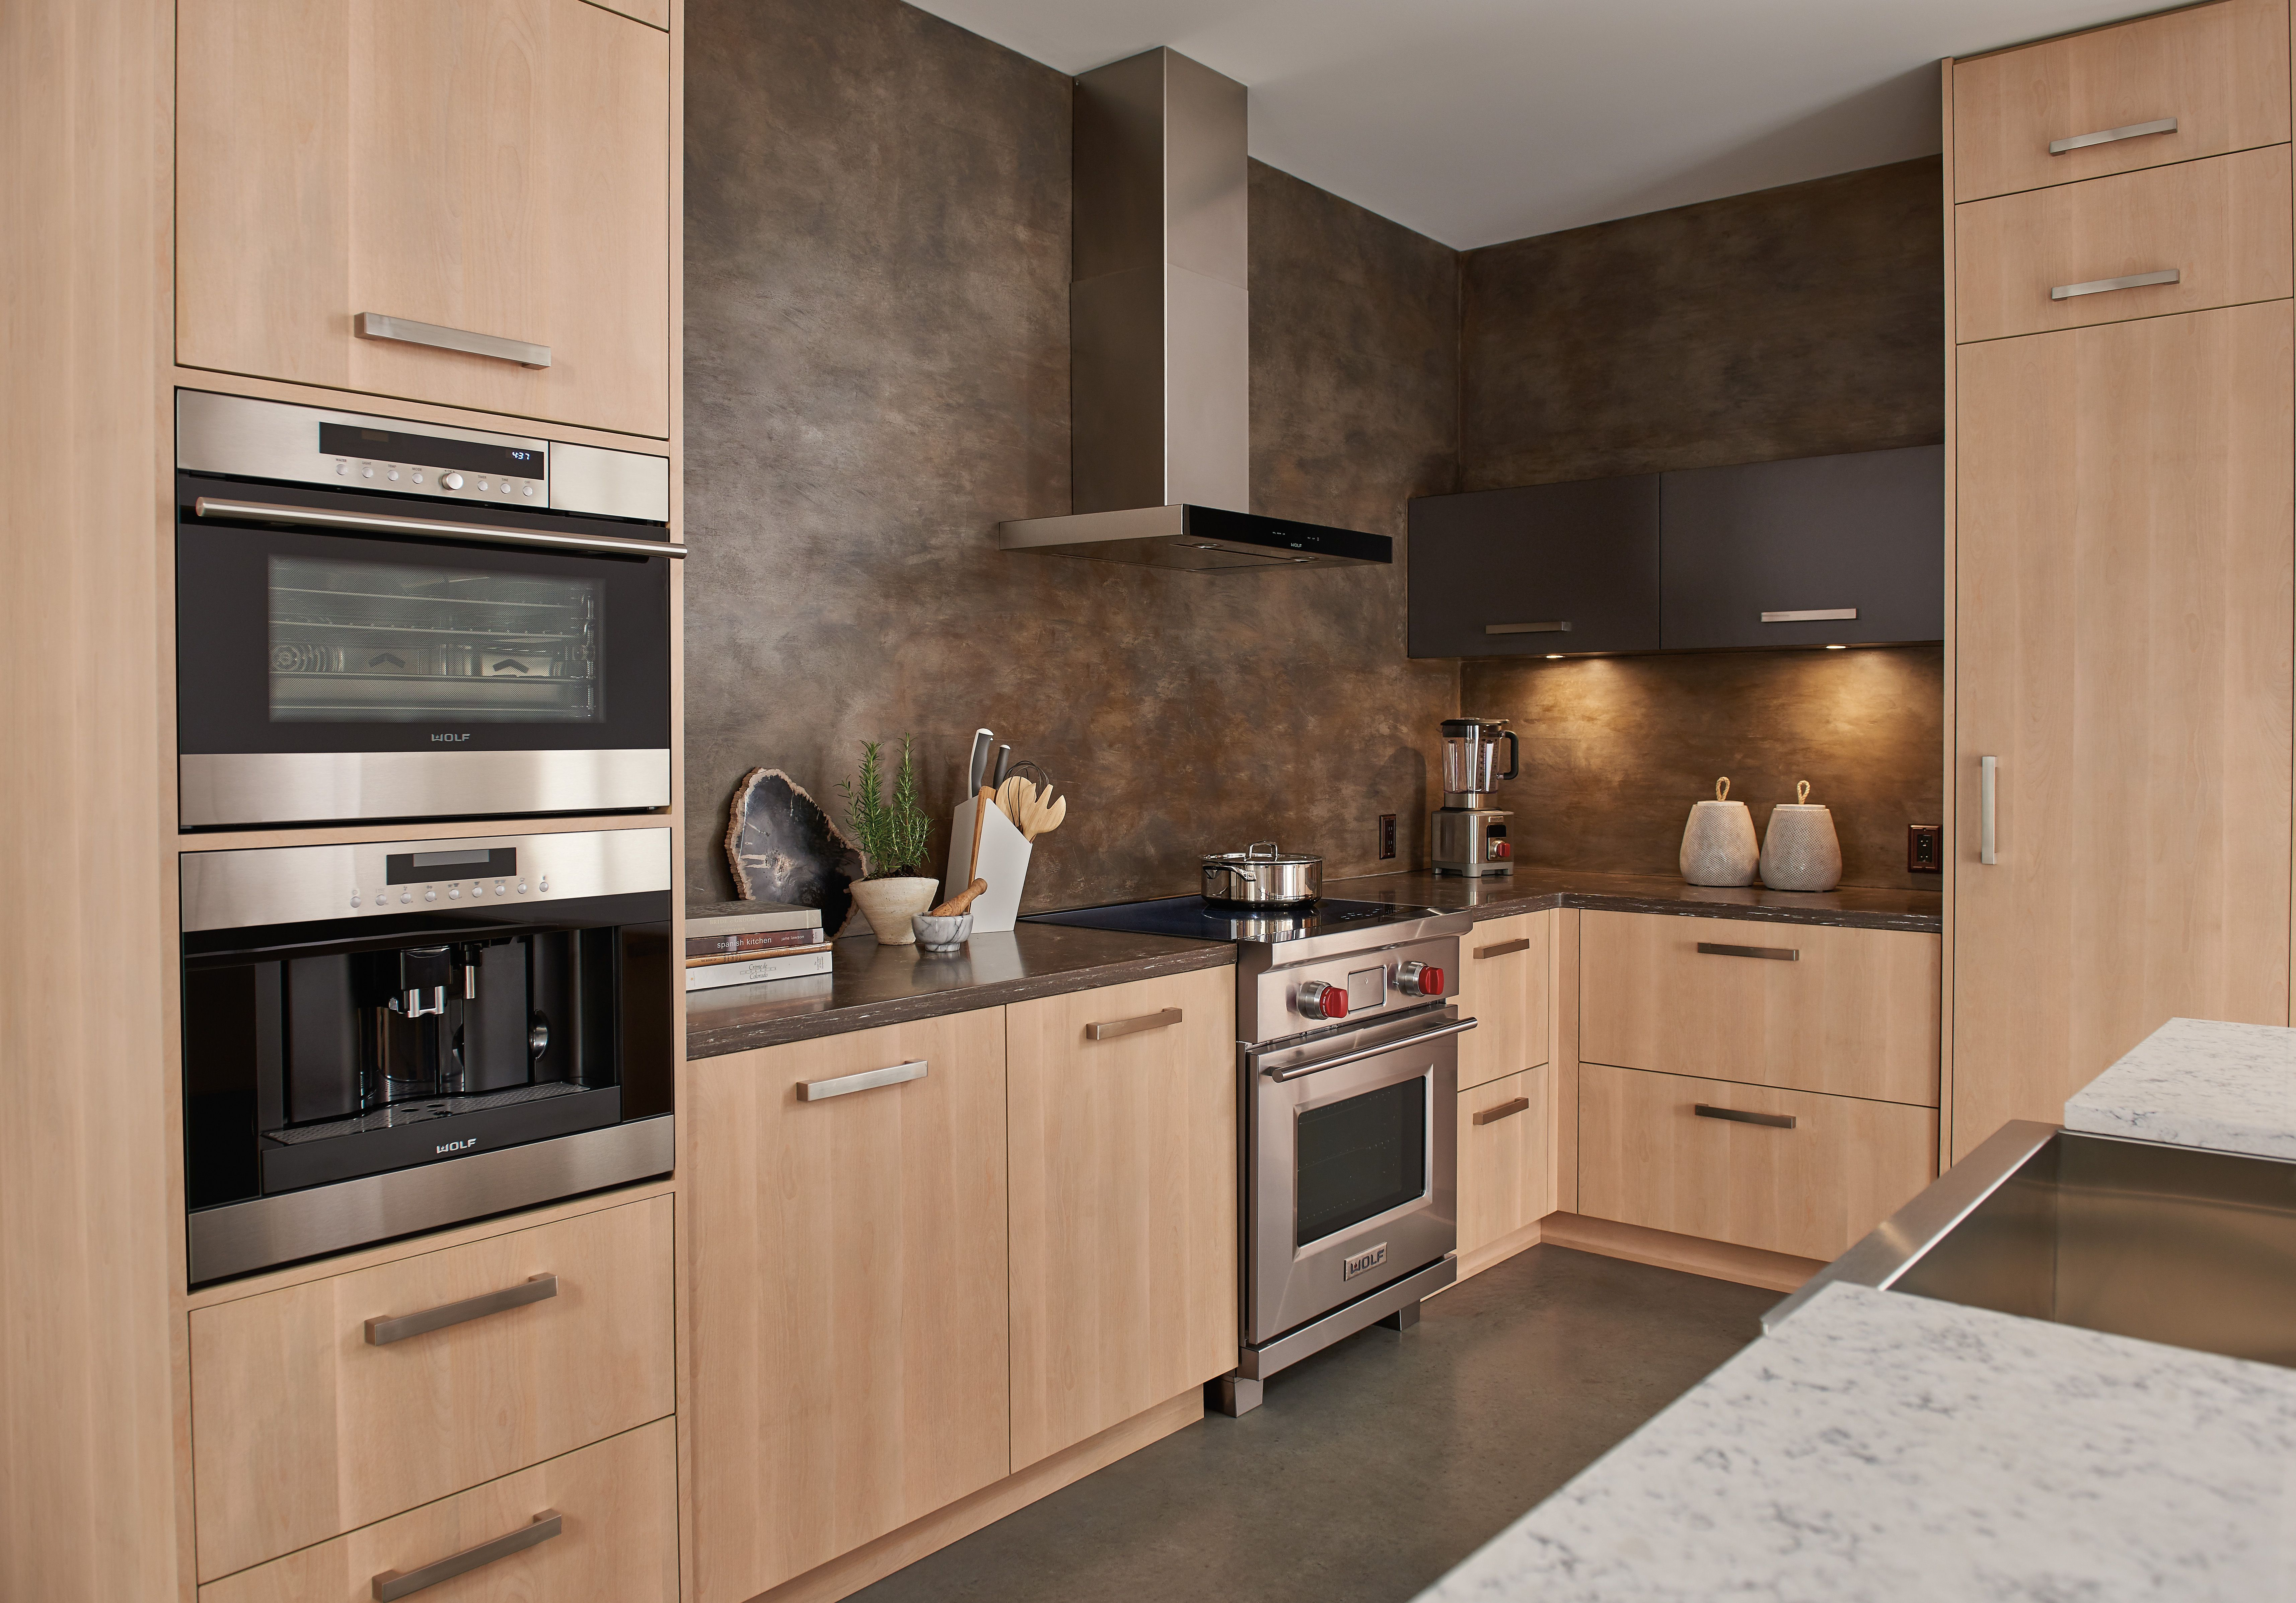 Compact Appliances For Small Kitchens Quiet Kitchen Hood A Doesn T Have To Mean Compromised Performance Sub Zero And